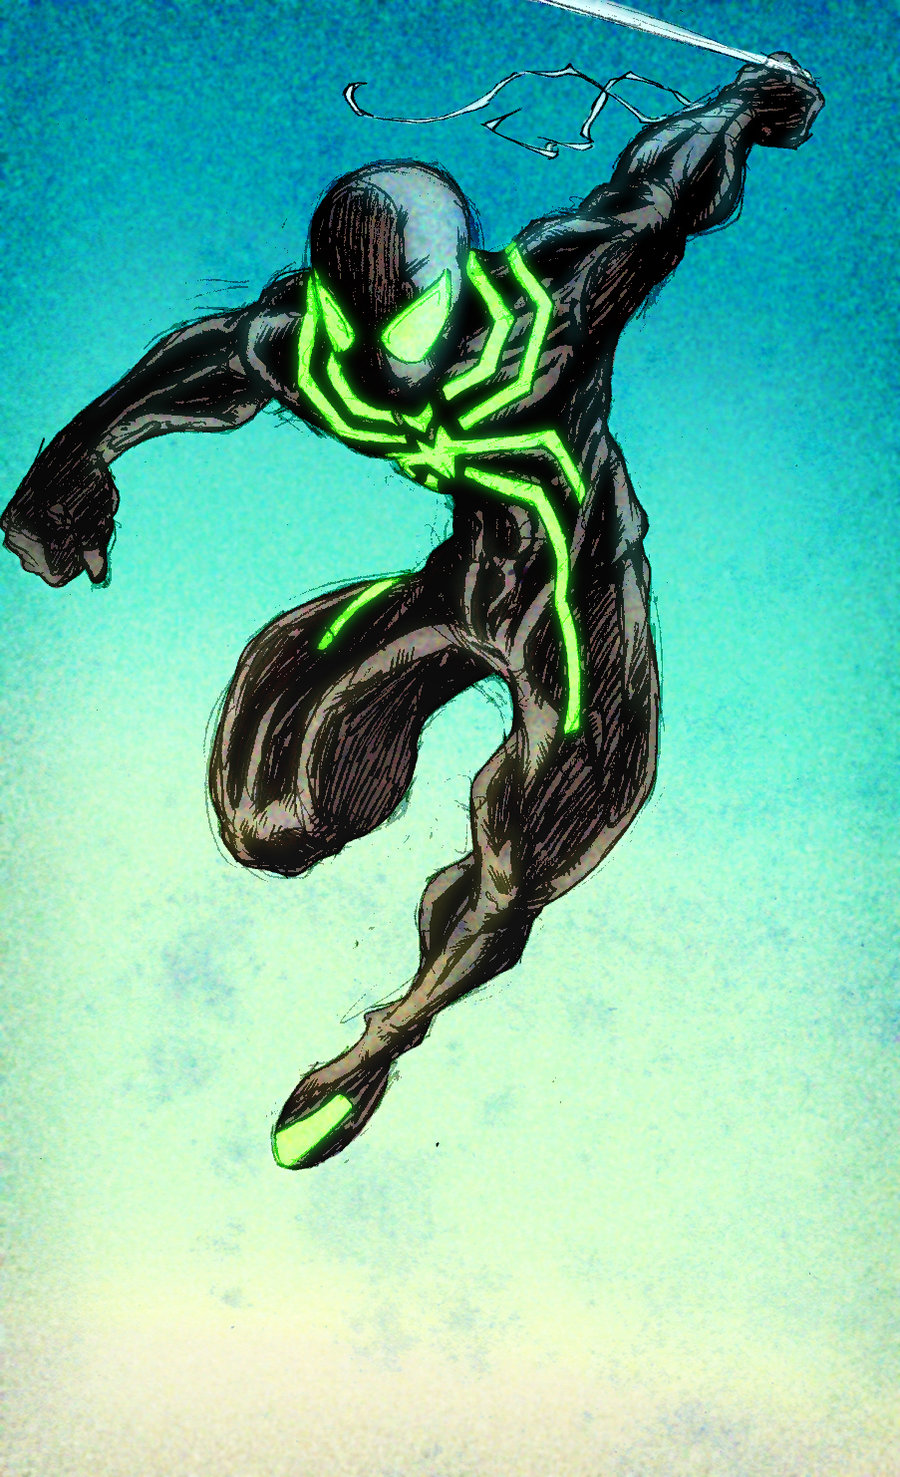 Neon Spider-man LimKichi cols by ParisAlleyne on DeviantArt